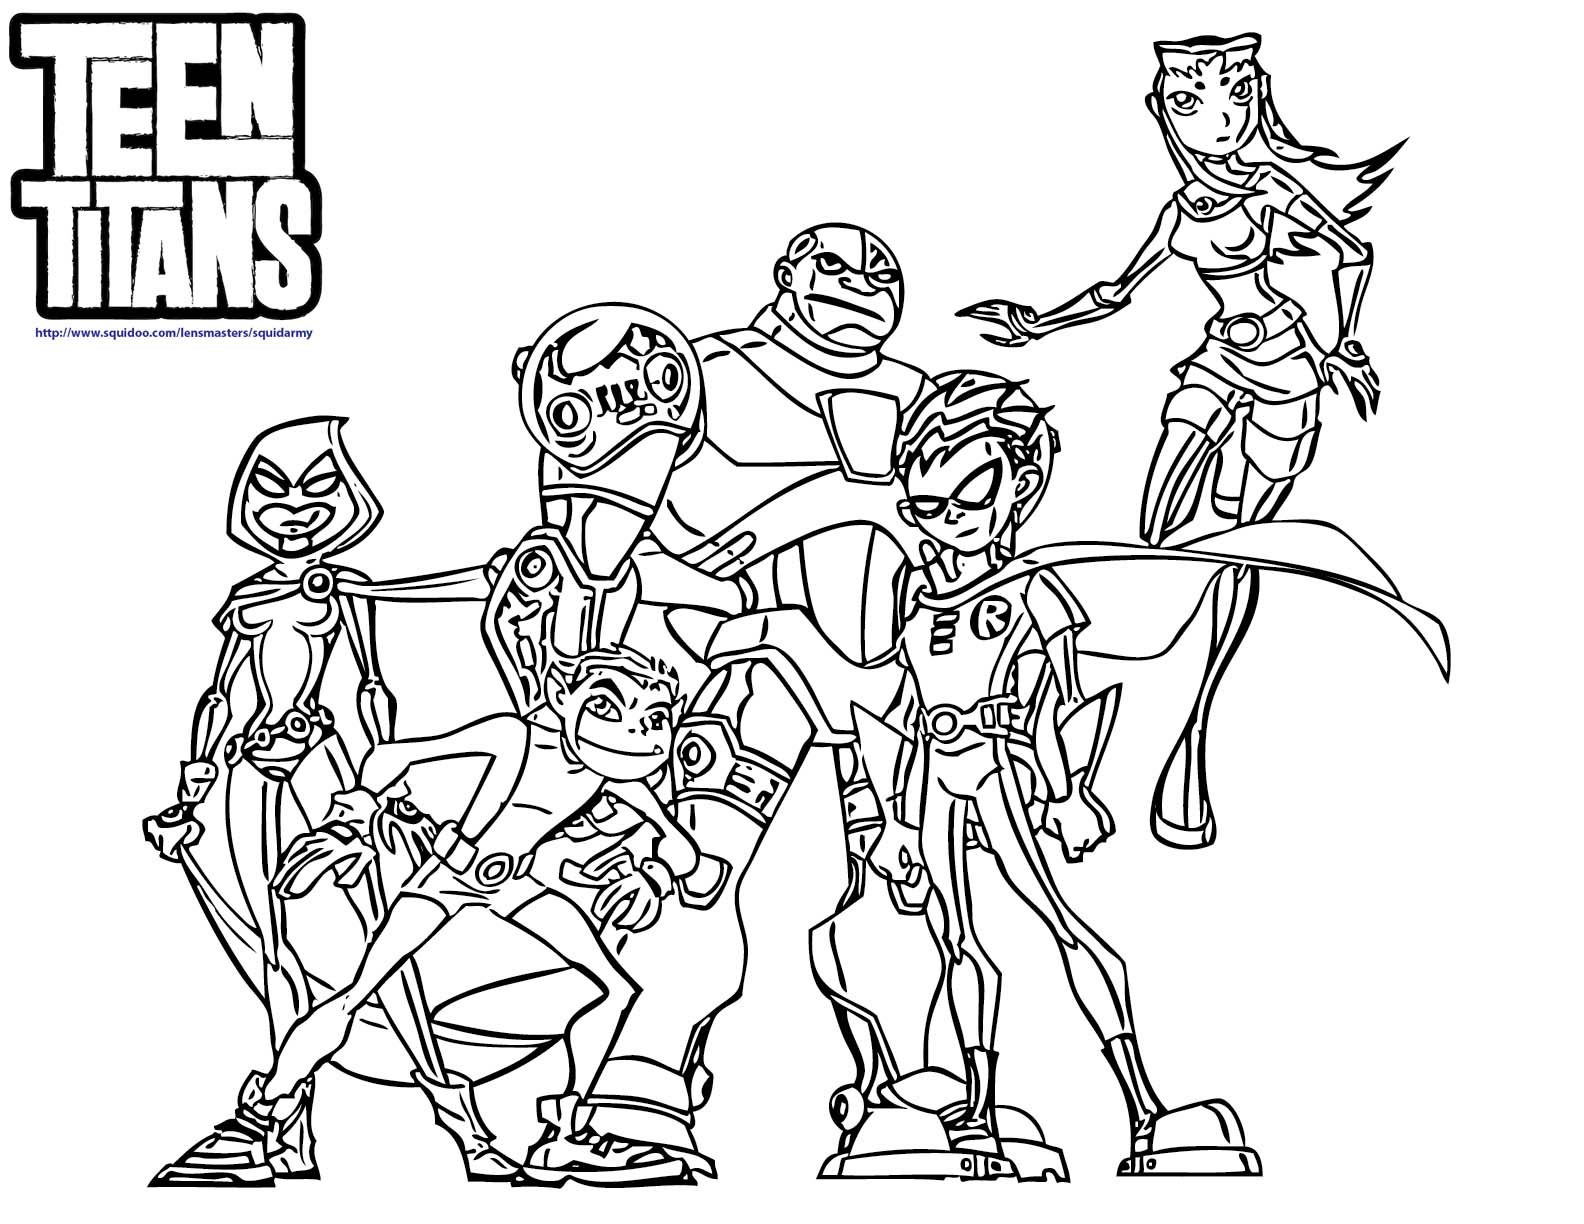 Teen Titans Coloring Page  Coloring Pages For Kids And For Adults